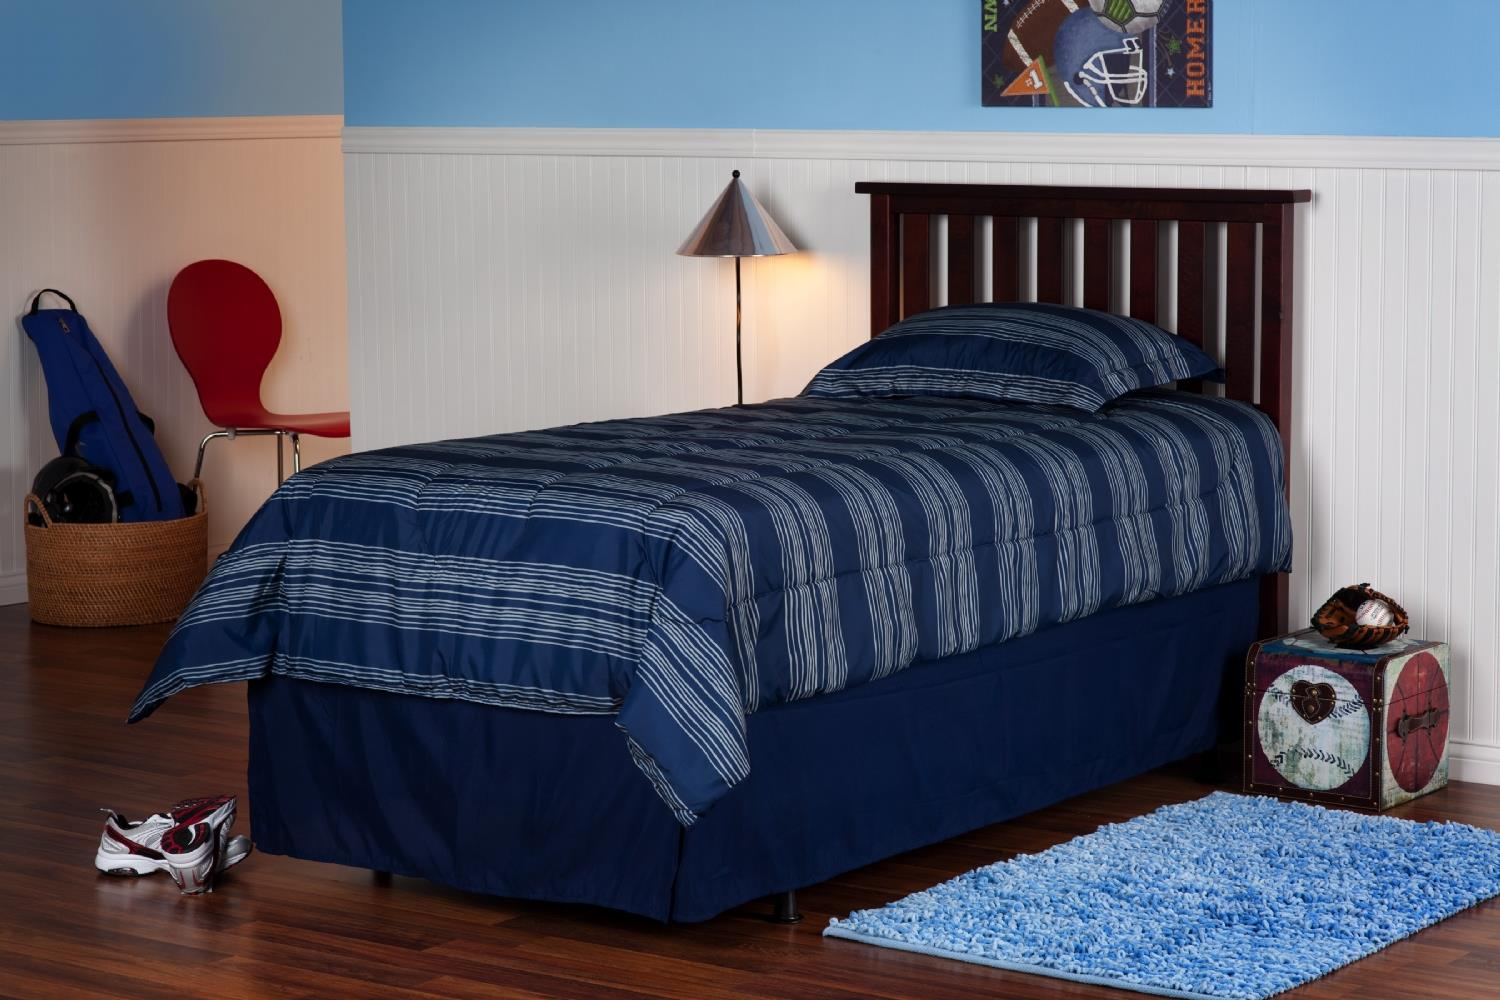 Fashion Bed Group Belmont Twin Headboard - Item Number: 51T523